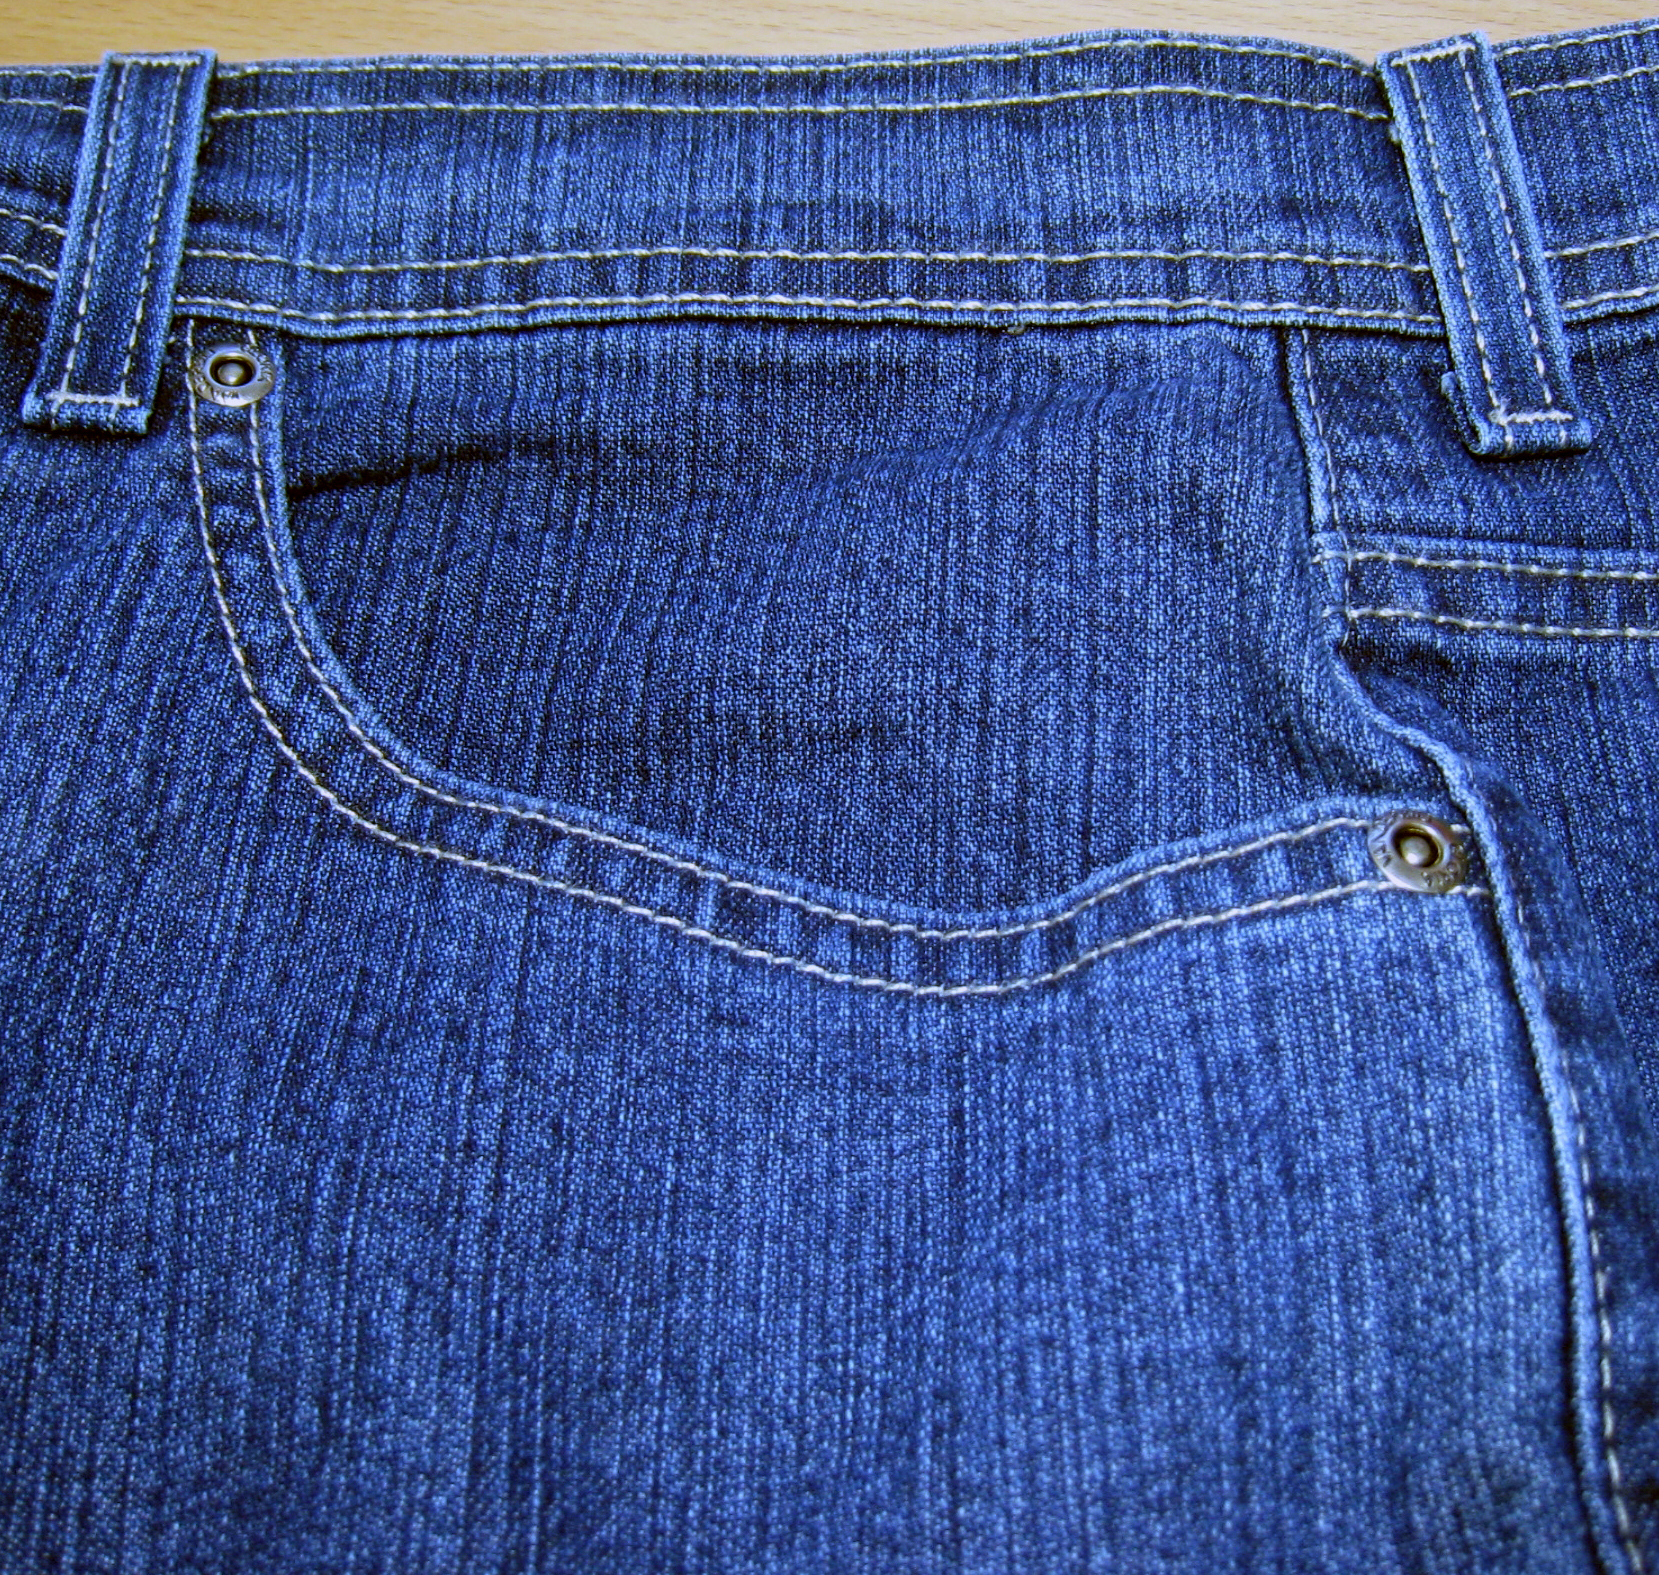 File:Jeans pocket front.jpg